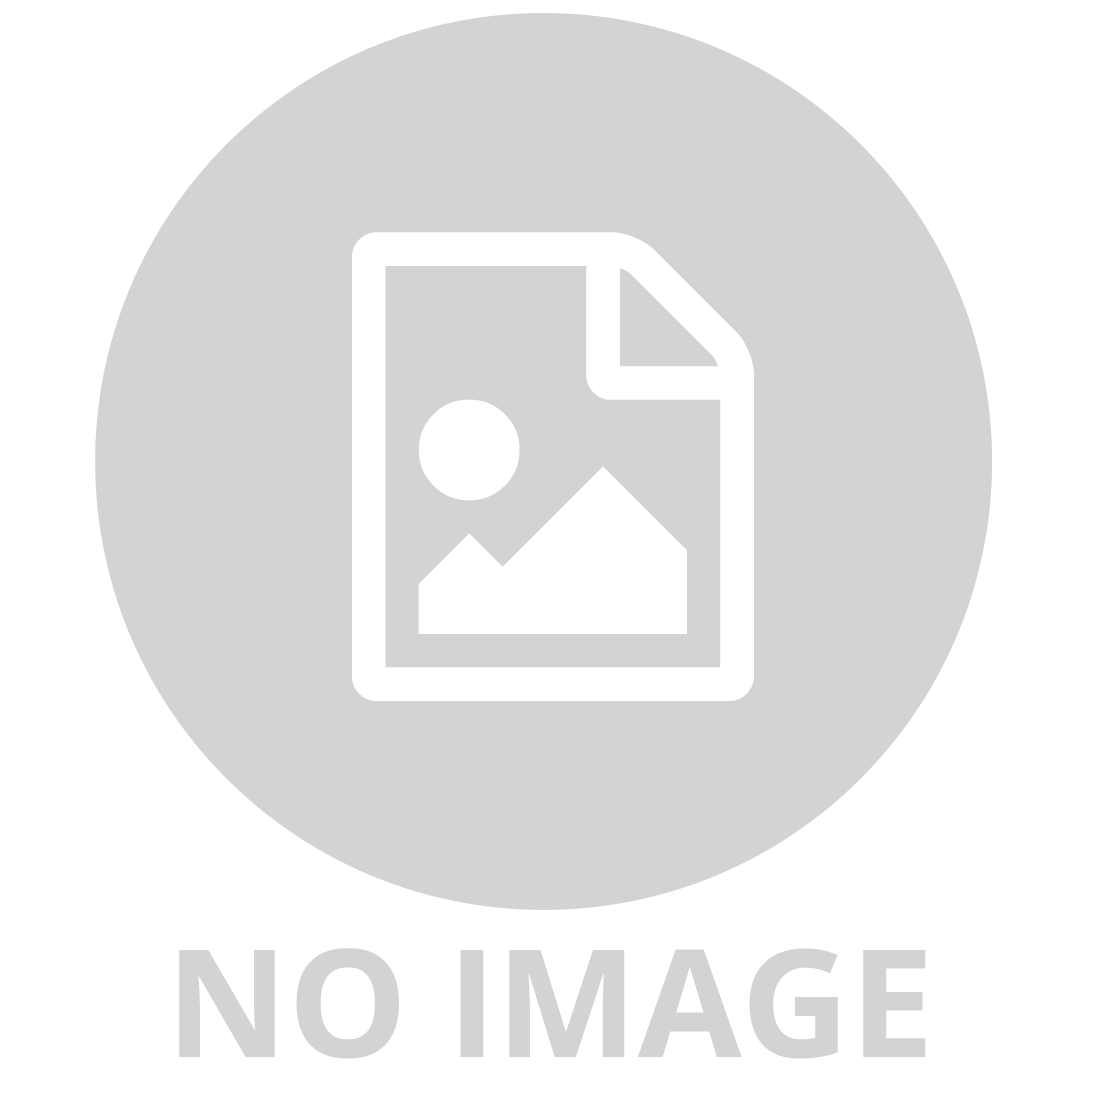 NATURE EXPLORER MAGNIFYING GLASS